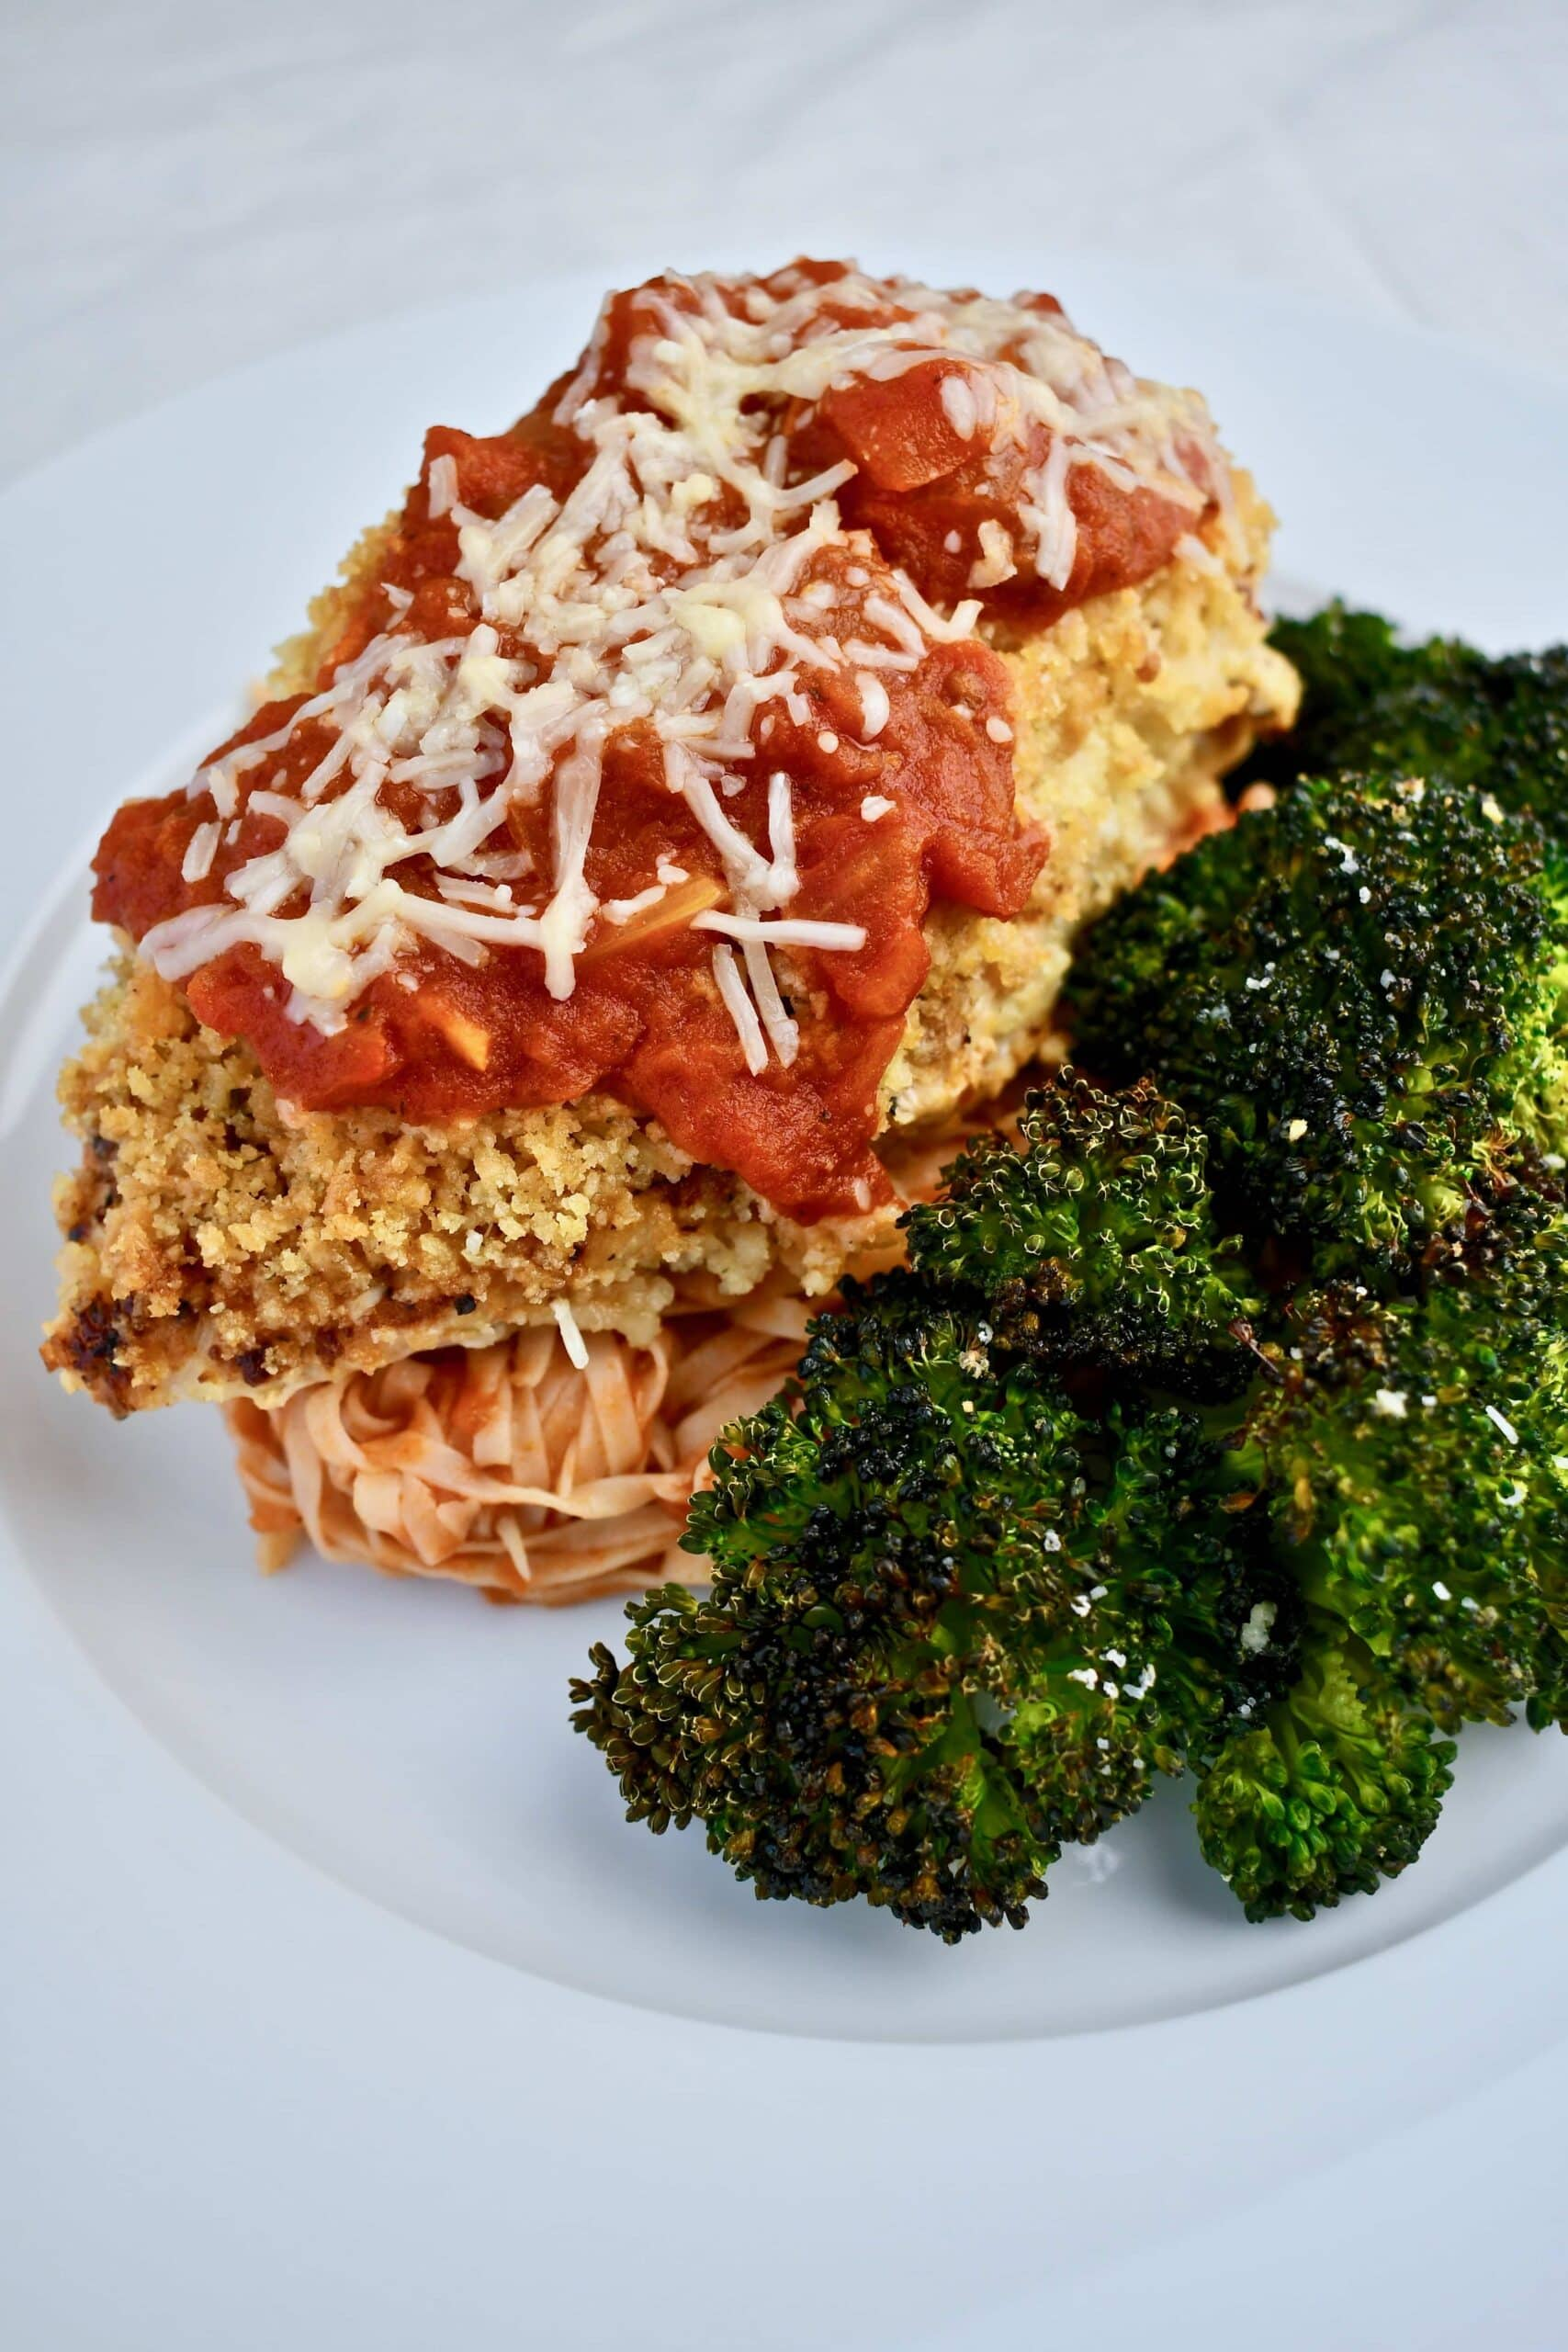 Chicken Parmesan, front view with a side of broccoli and pasta with sauce.